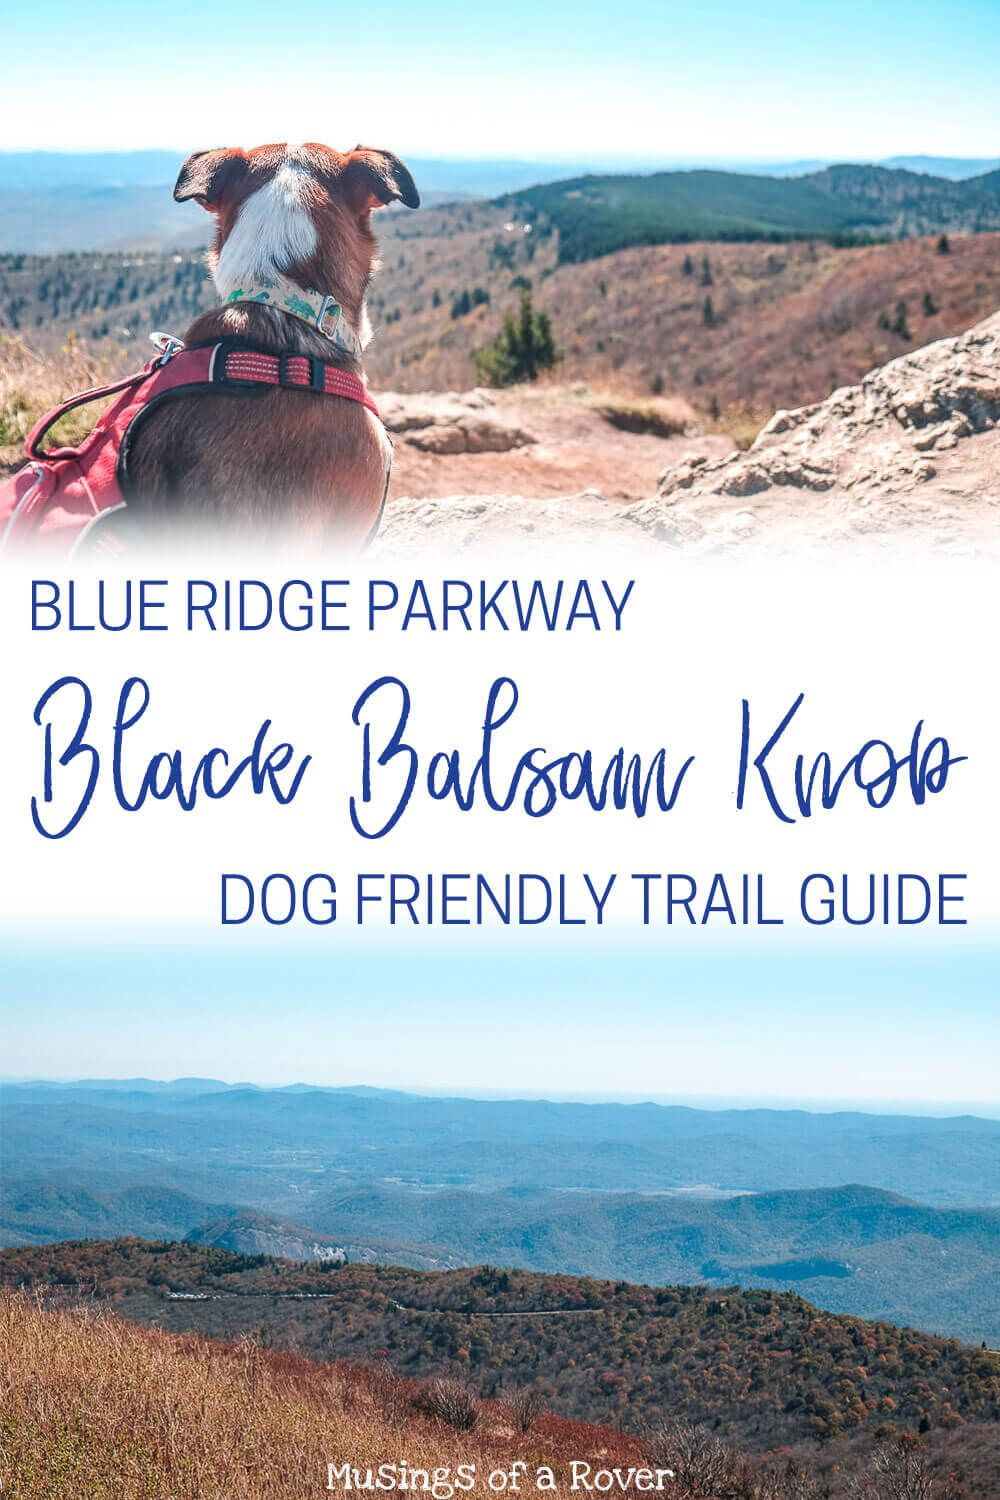 Looking for a day trip from Greenville, SC. One of the best things to do is to head to the Blue Ridge Parkway and hike this easy trail to Black Balsam Knob. And it's dog friendly!